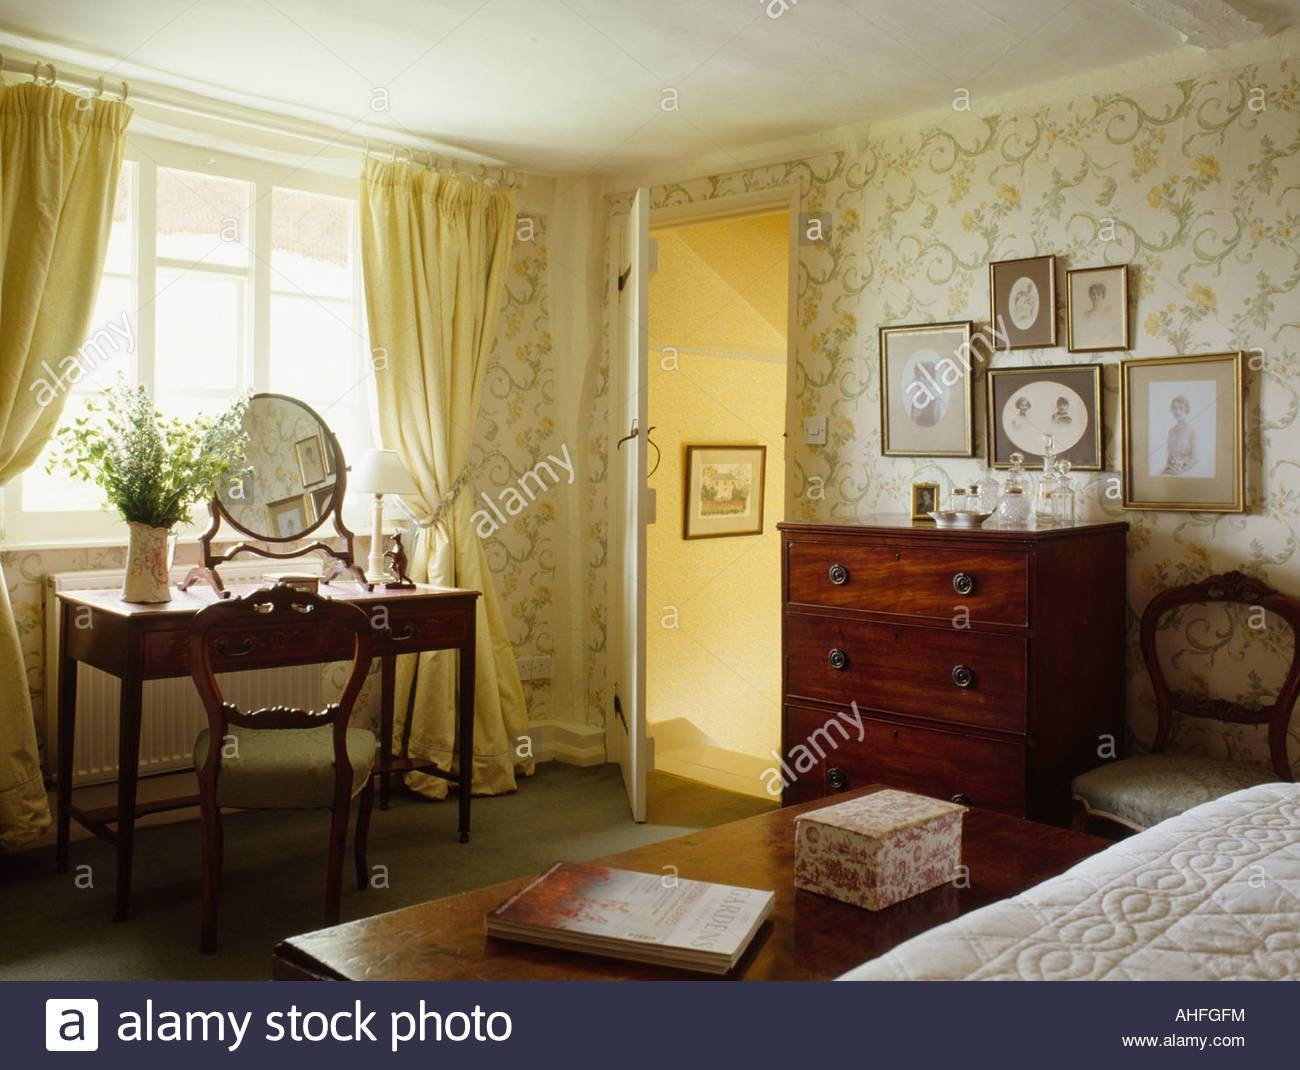 Best Pastel Yellow Curtains In Traditional Country Bedroom With With Pictures